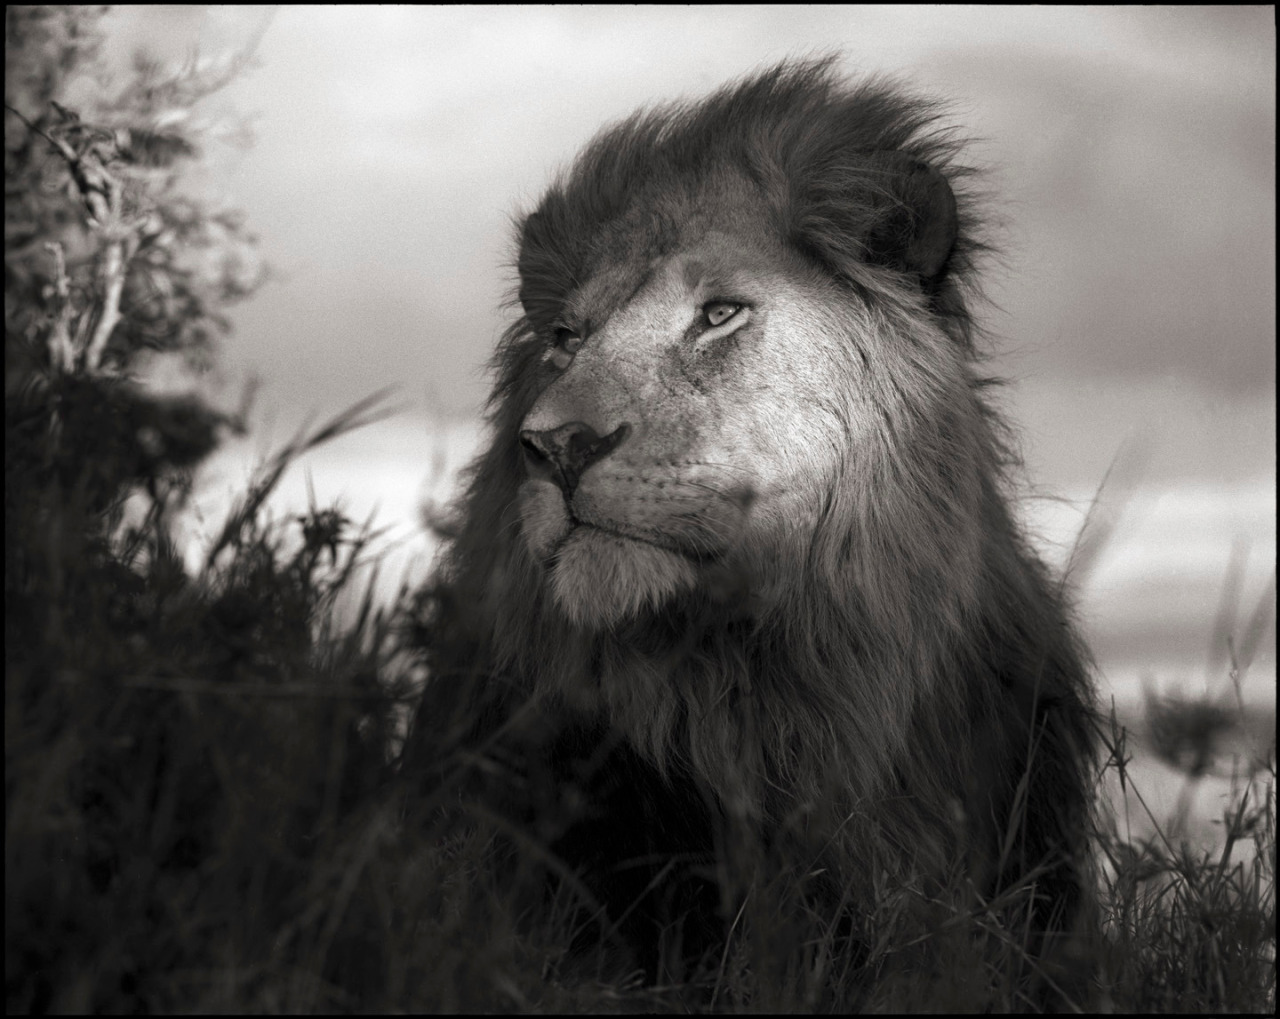 Nick Brandt - Lion in Shaft of Light ©  Nick Brandt